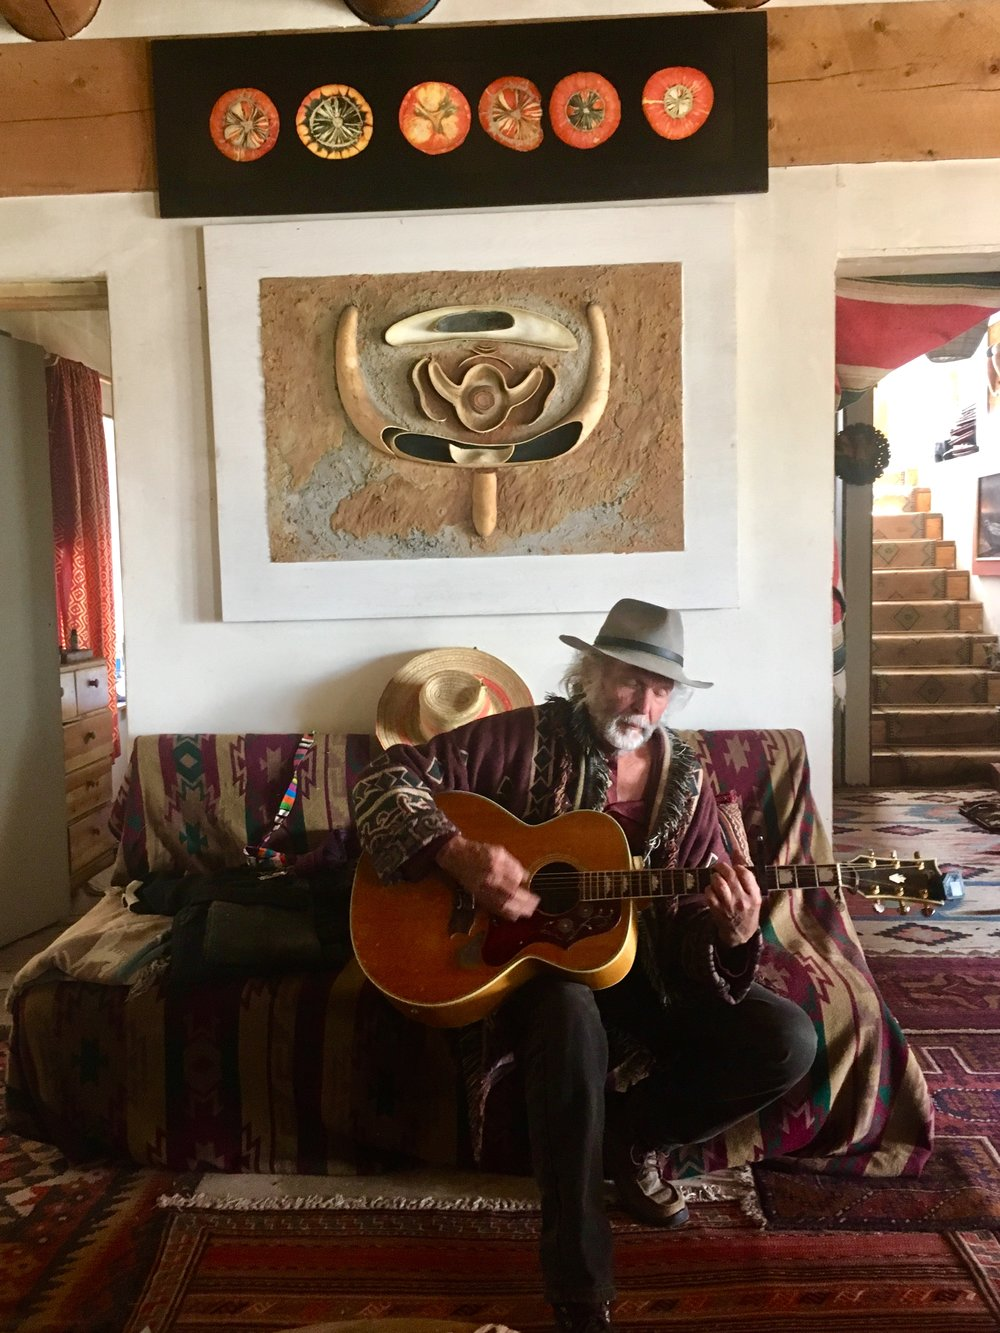 Anselm, playing us a song about his 30 year old mistress below his gourd art work